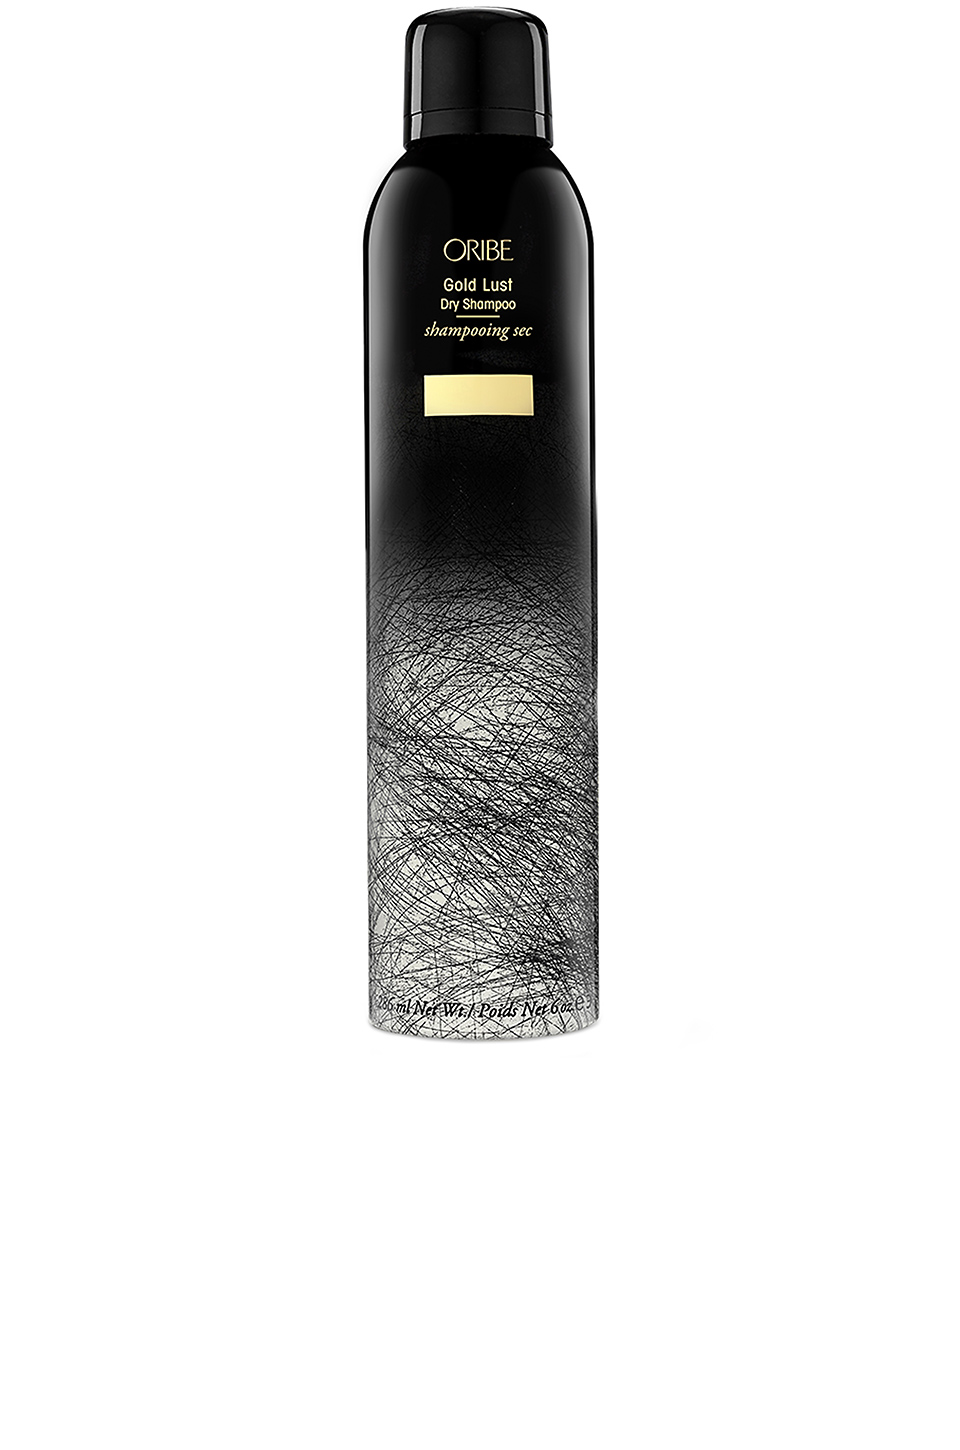 Oribe Gold Lust Dry Shampoo in